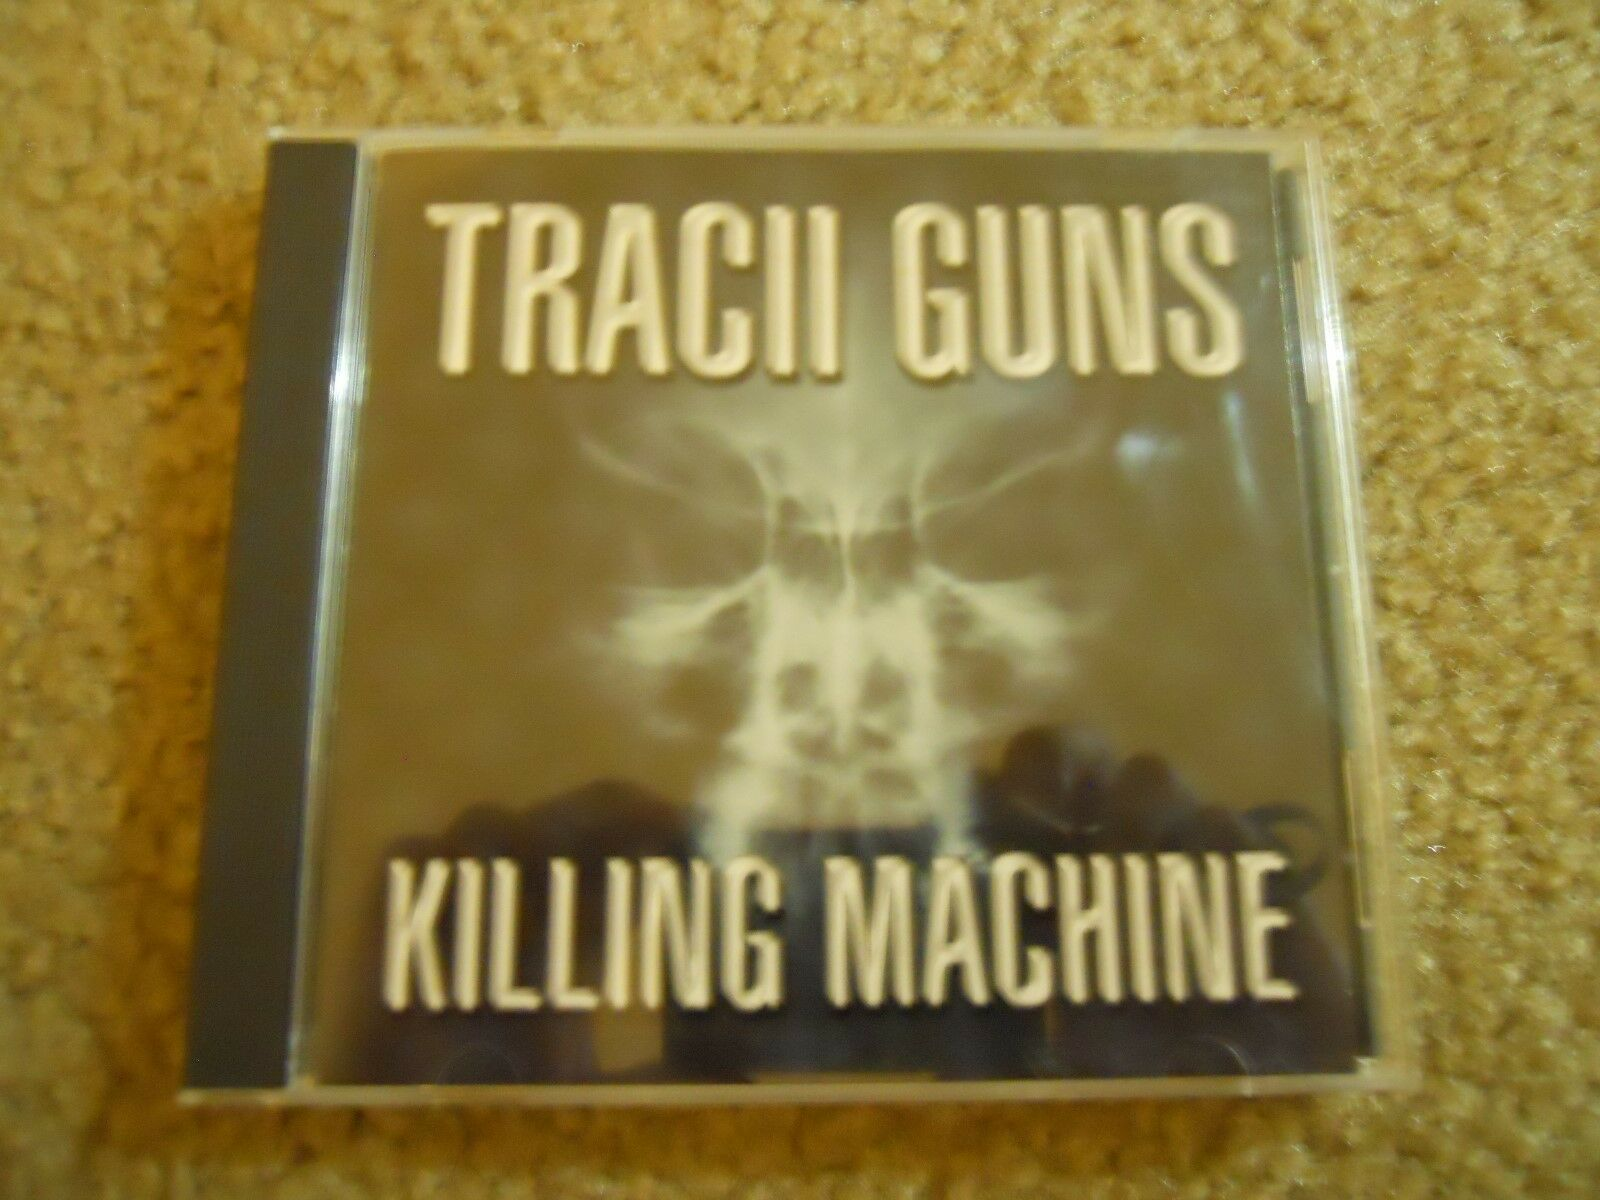 TRACII GUNS KILLING MACHINE LA GUNS, GUNS N ROSES, STEEL PANTHER, VAN HALEN - $8.00